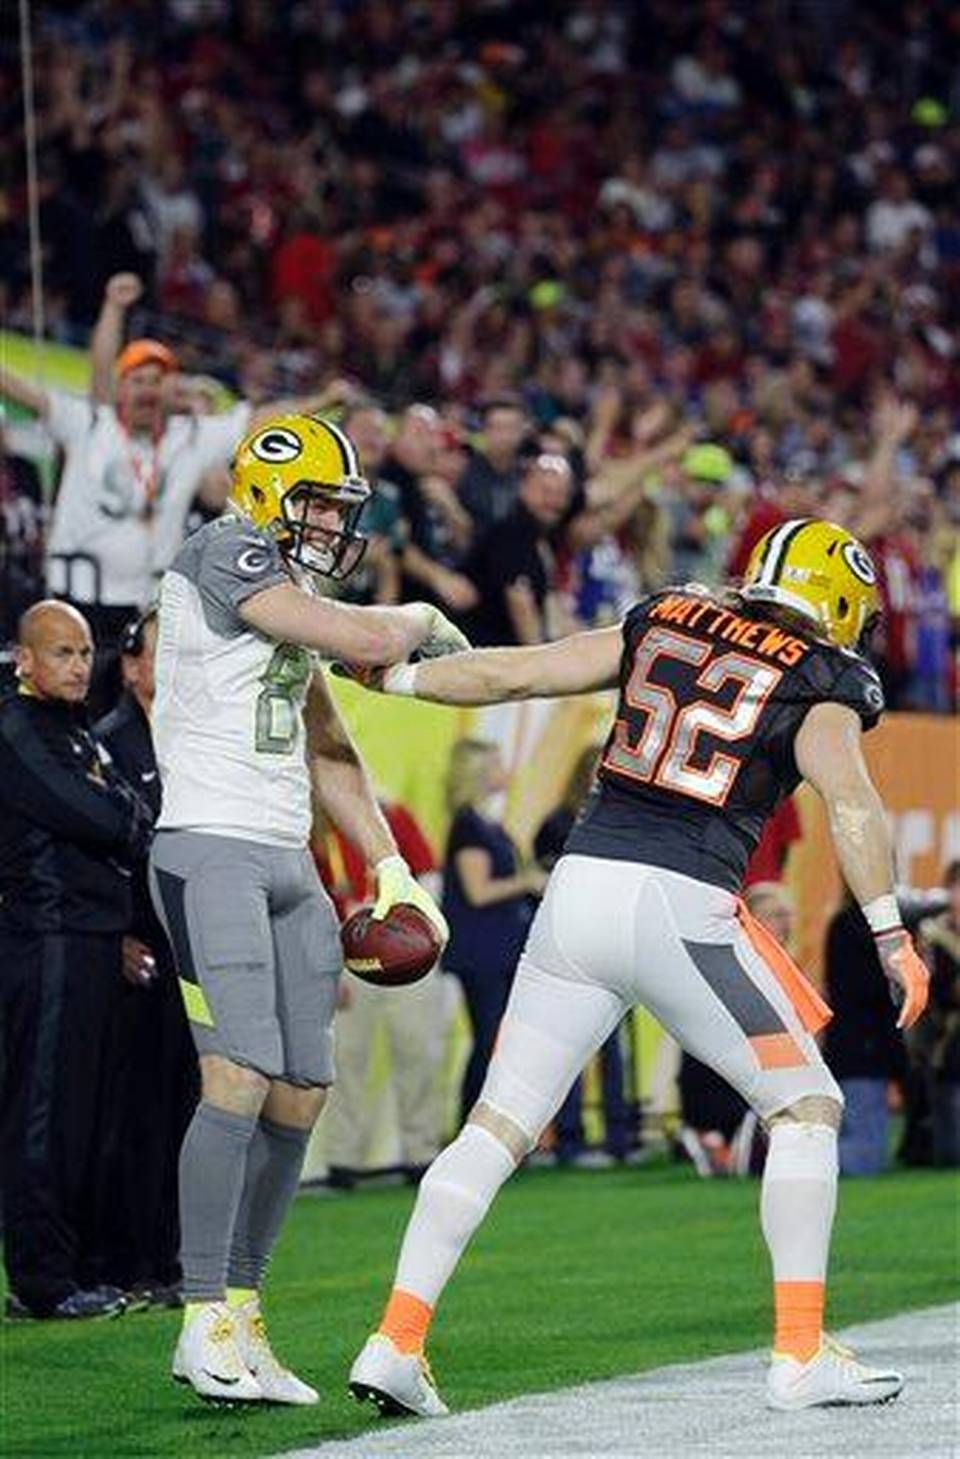 Photo Gallery Team Irvin Defeats Team Carter 32 28 In Pro Bowl Green Bay Packers Green Bay Packers Fans Green Bay Packers Players